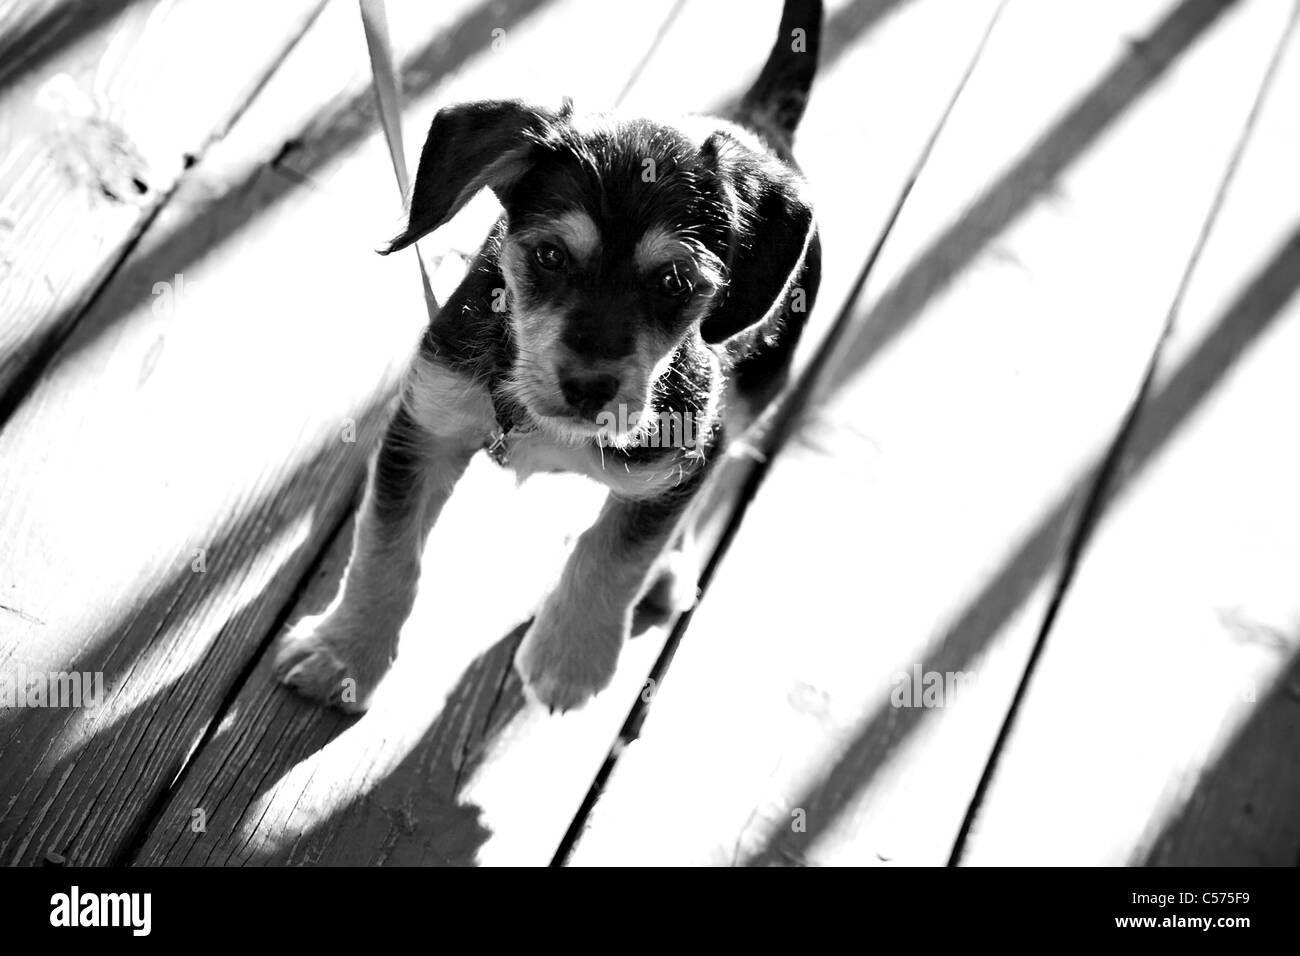 A Cute Mixed Breed Borkie Puppy In Black And White Shallow Depth Of